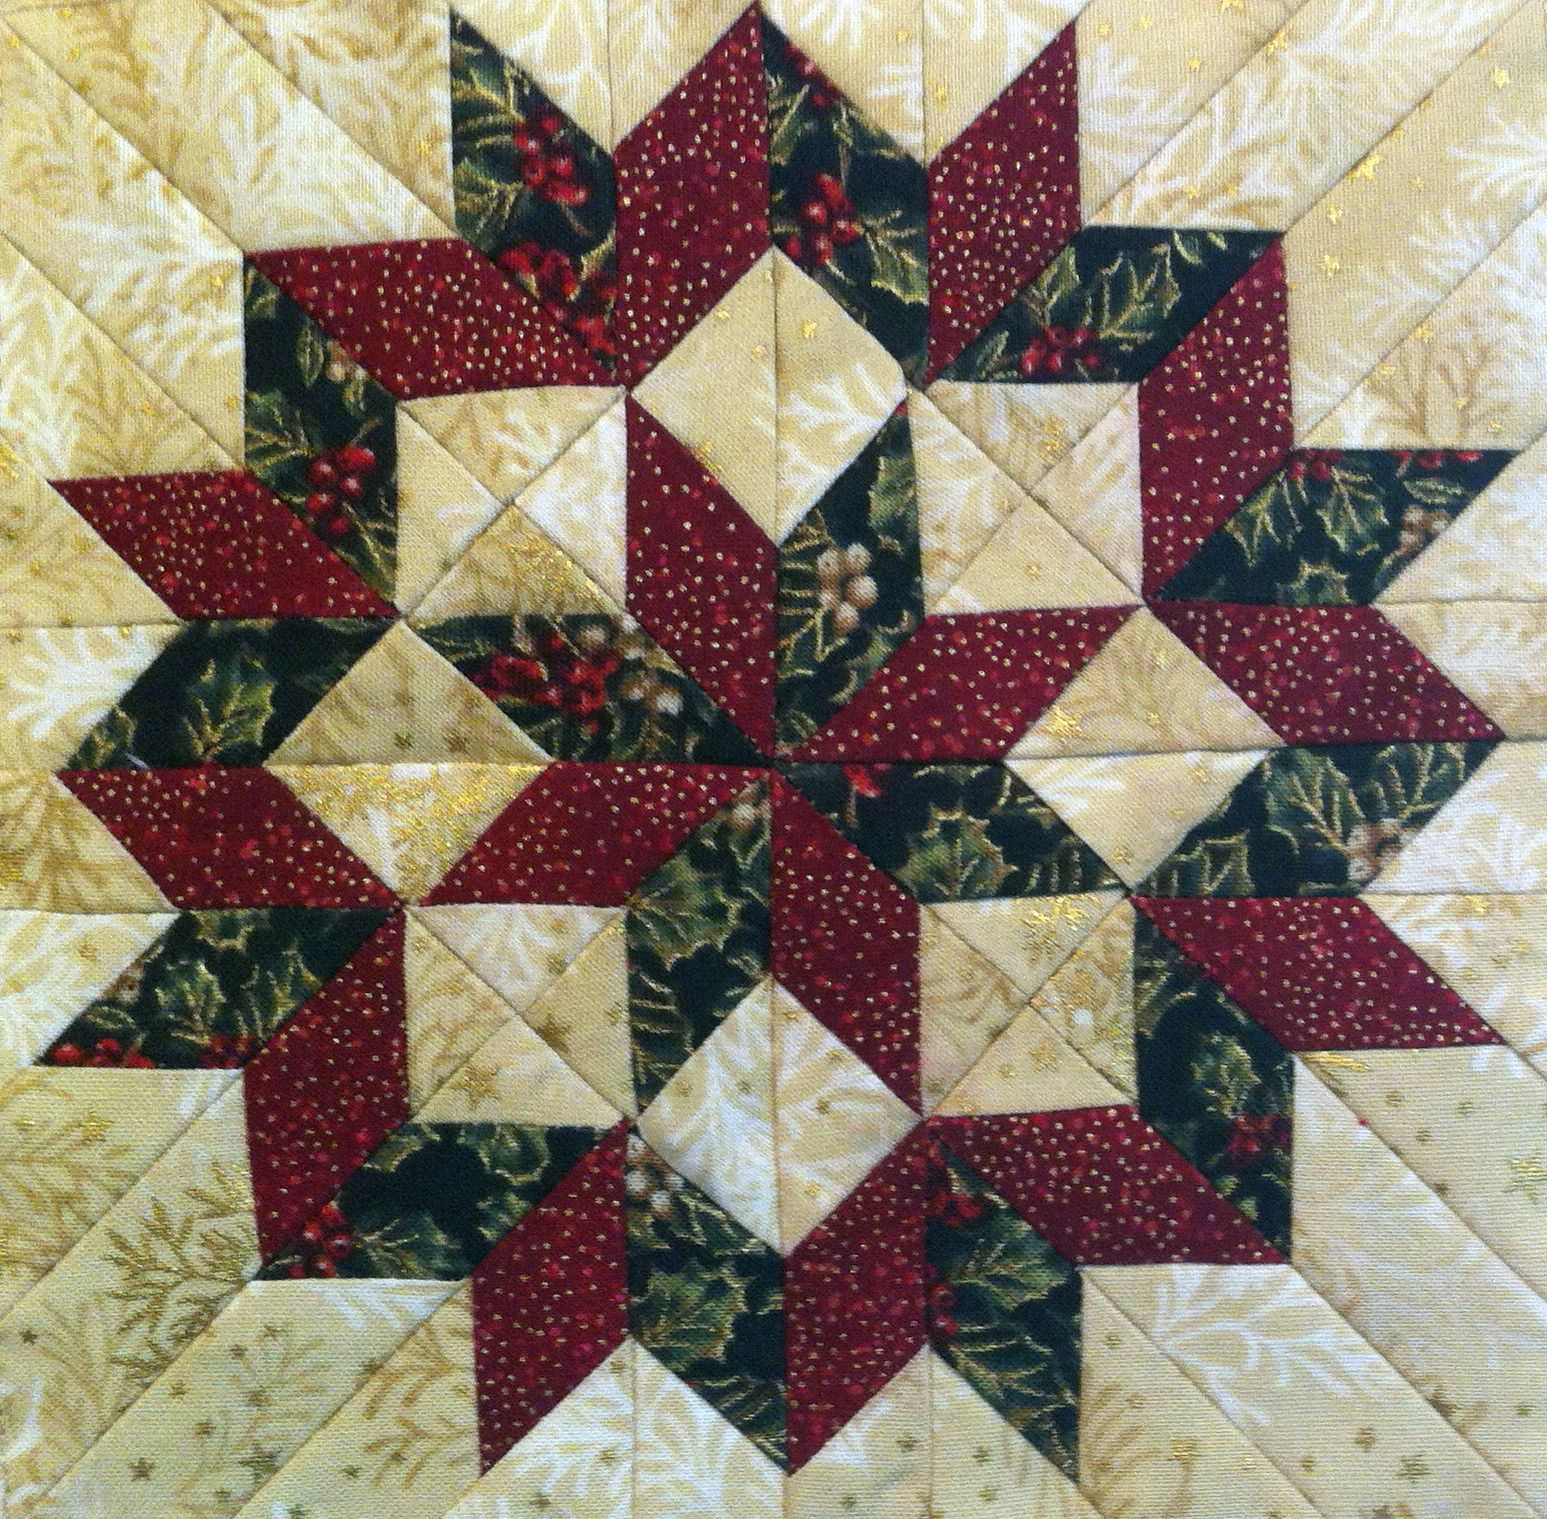 Carpenter S Star Quilts I Want To Make Pinterest